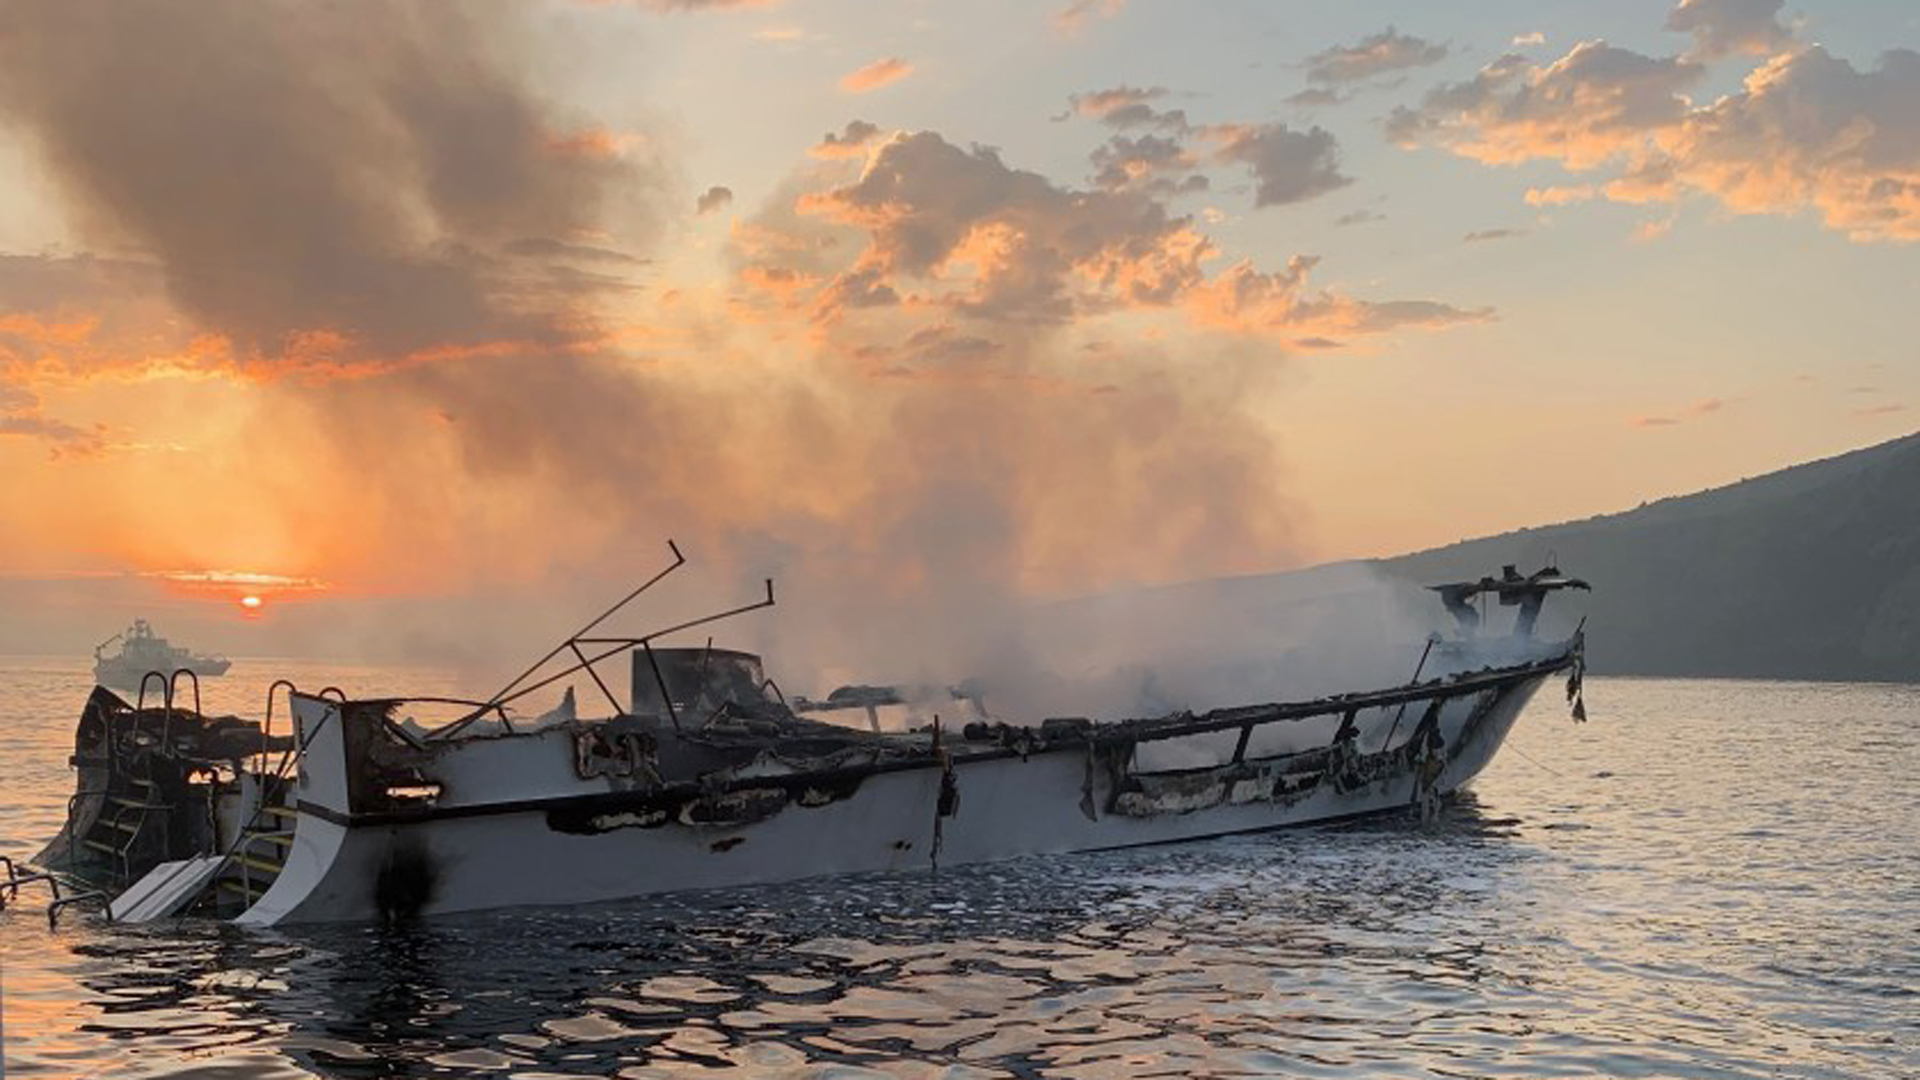 The burned-out shell of the Conception which caught fire near Santa Cruz Island.(Credit: Ventura County Fire Department via Los Angeles Times)